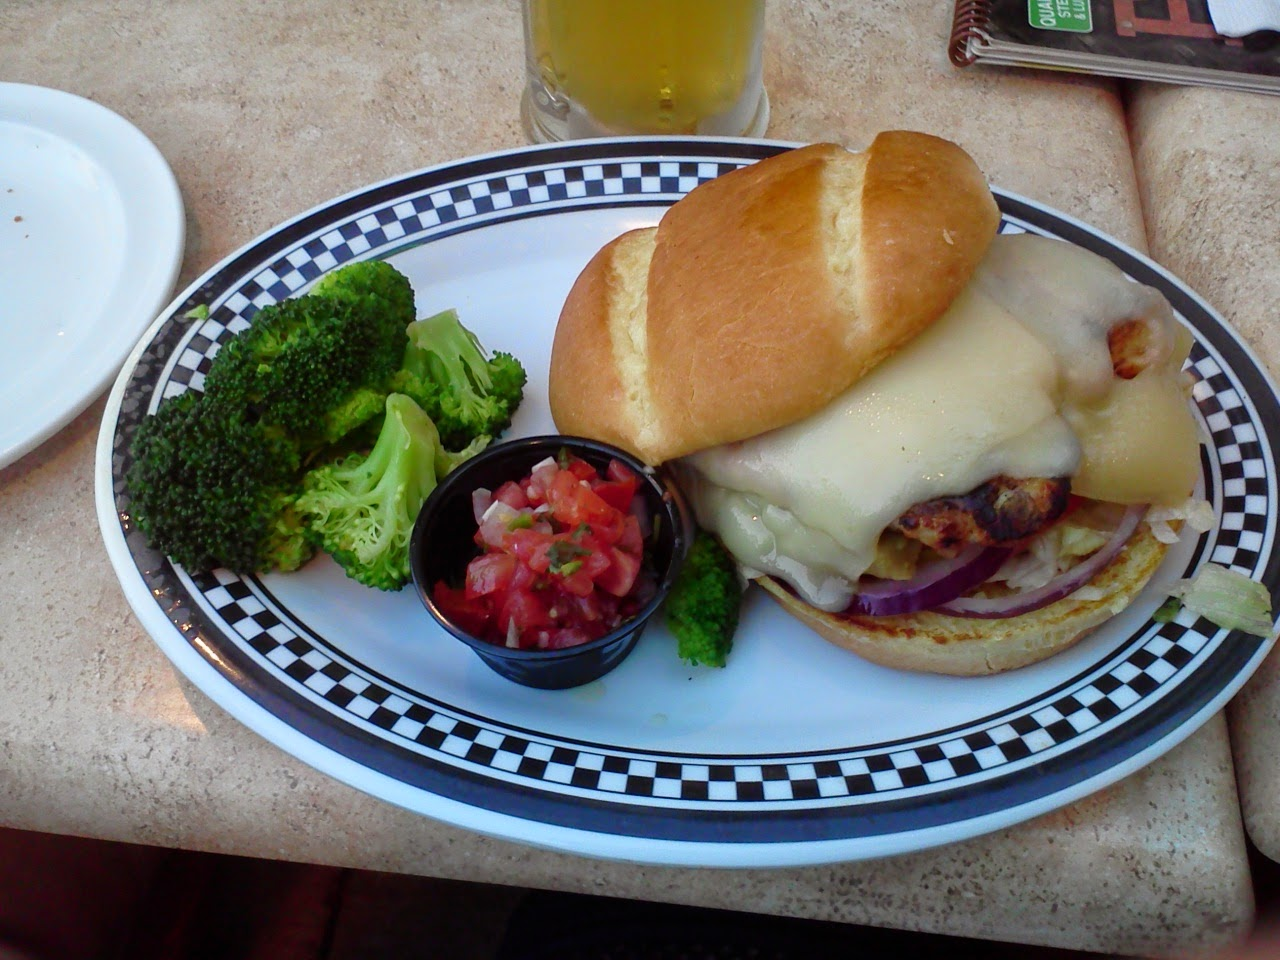 California chicken sandwich at Quaker Steak and Lube